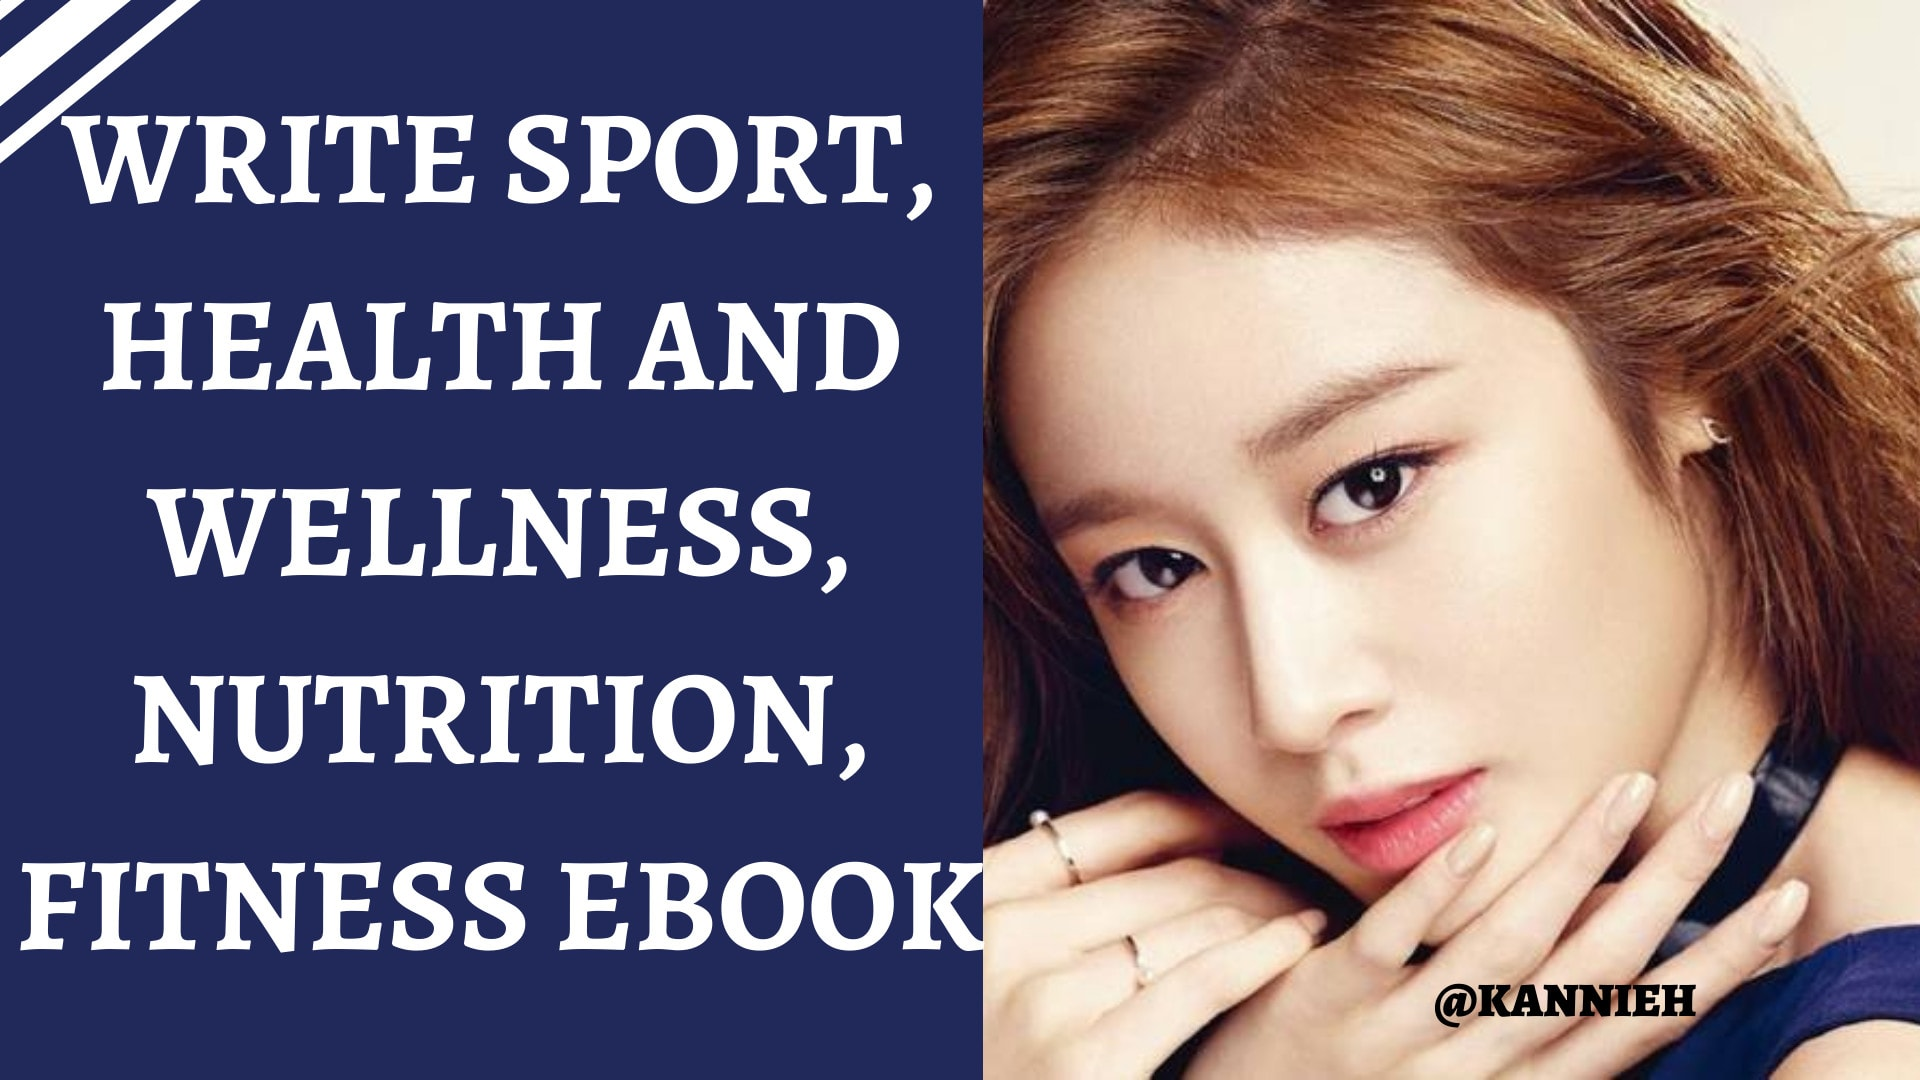 be your health and fitness, body building, wellness, lifestyle eBook writer, FiverrBox